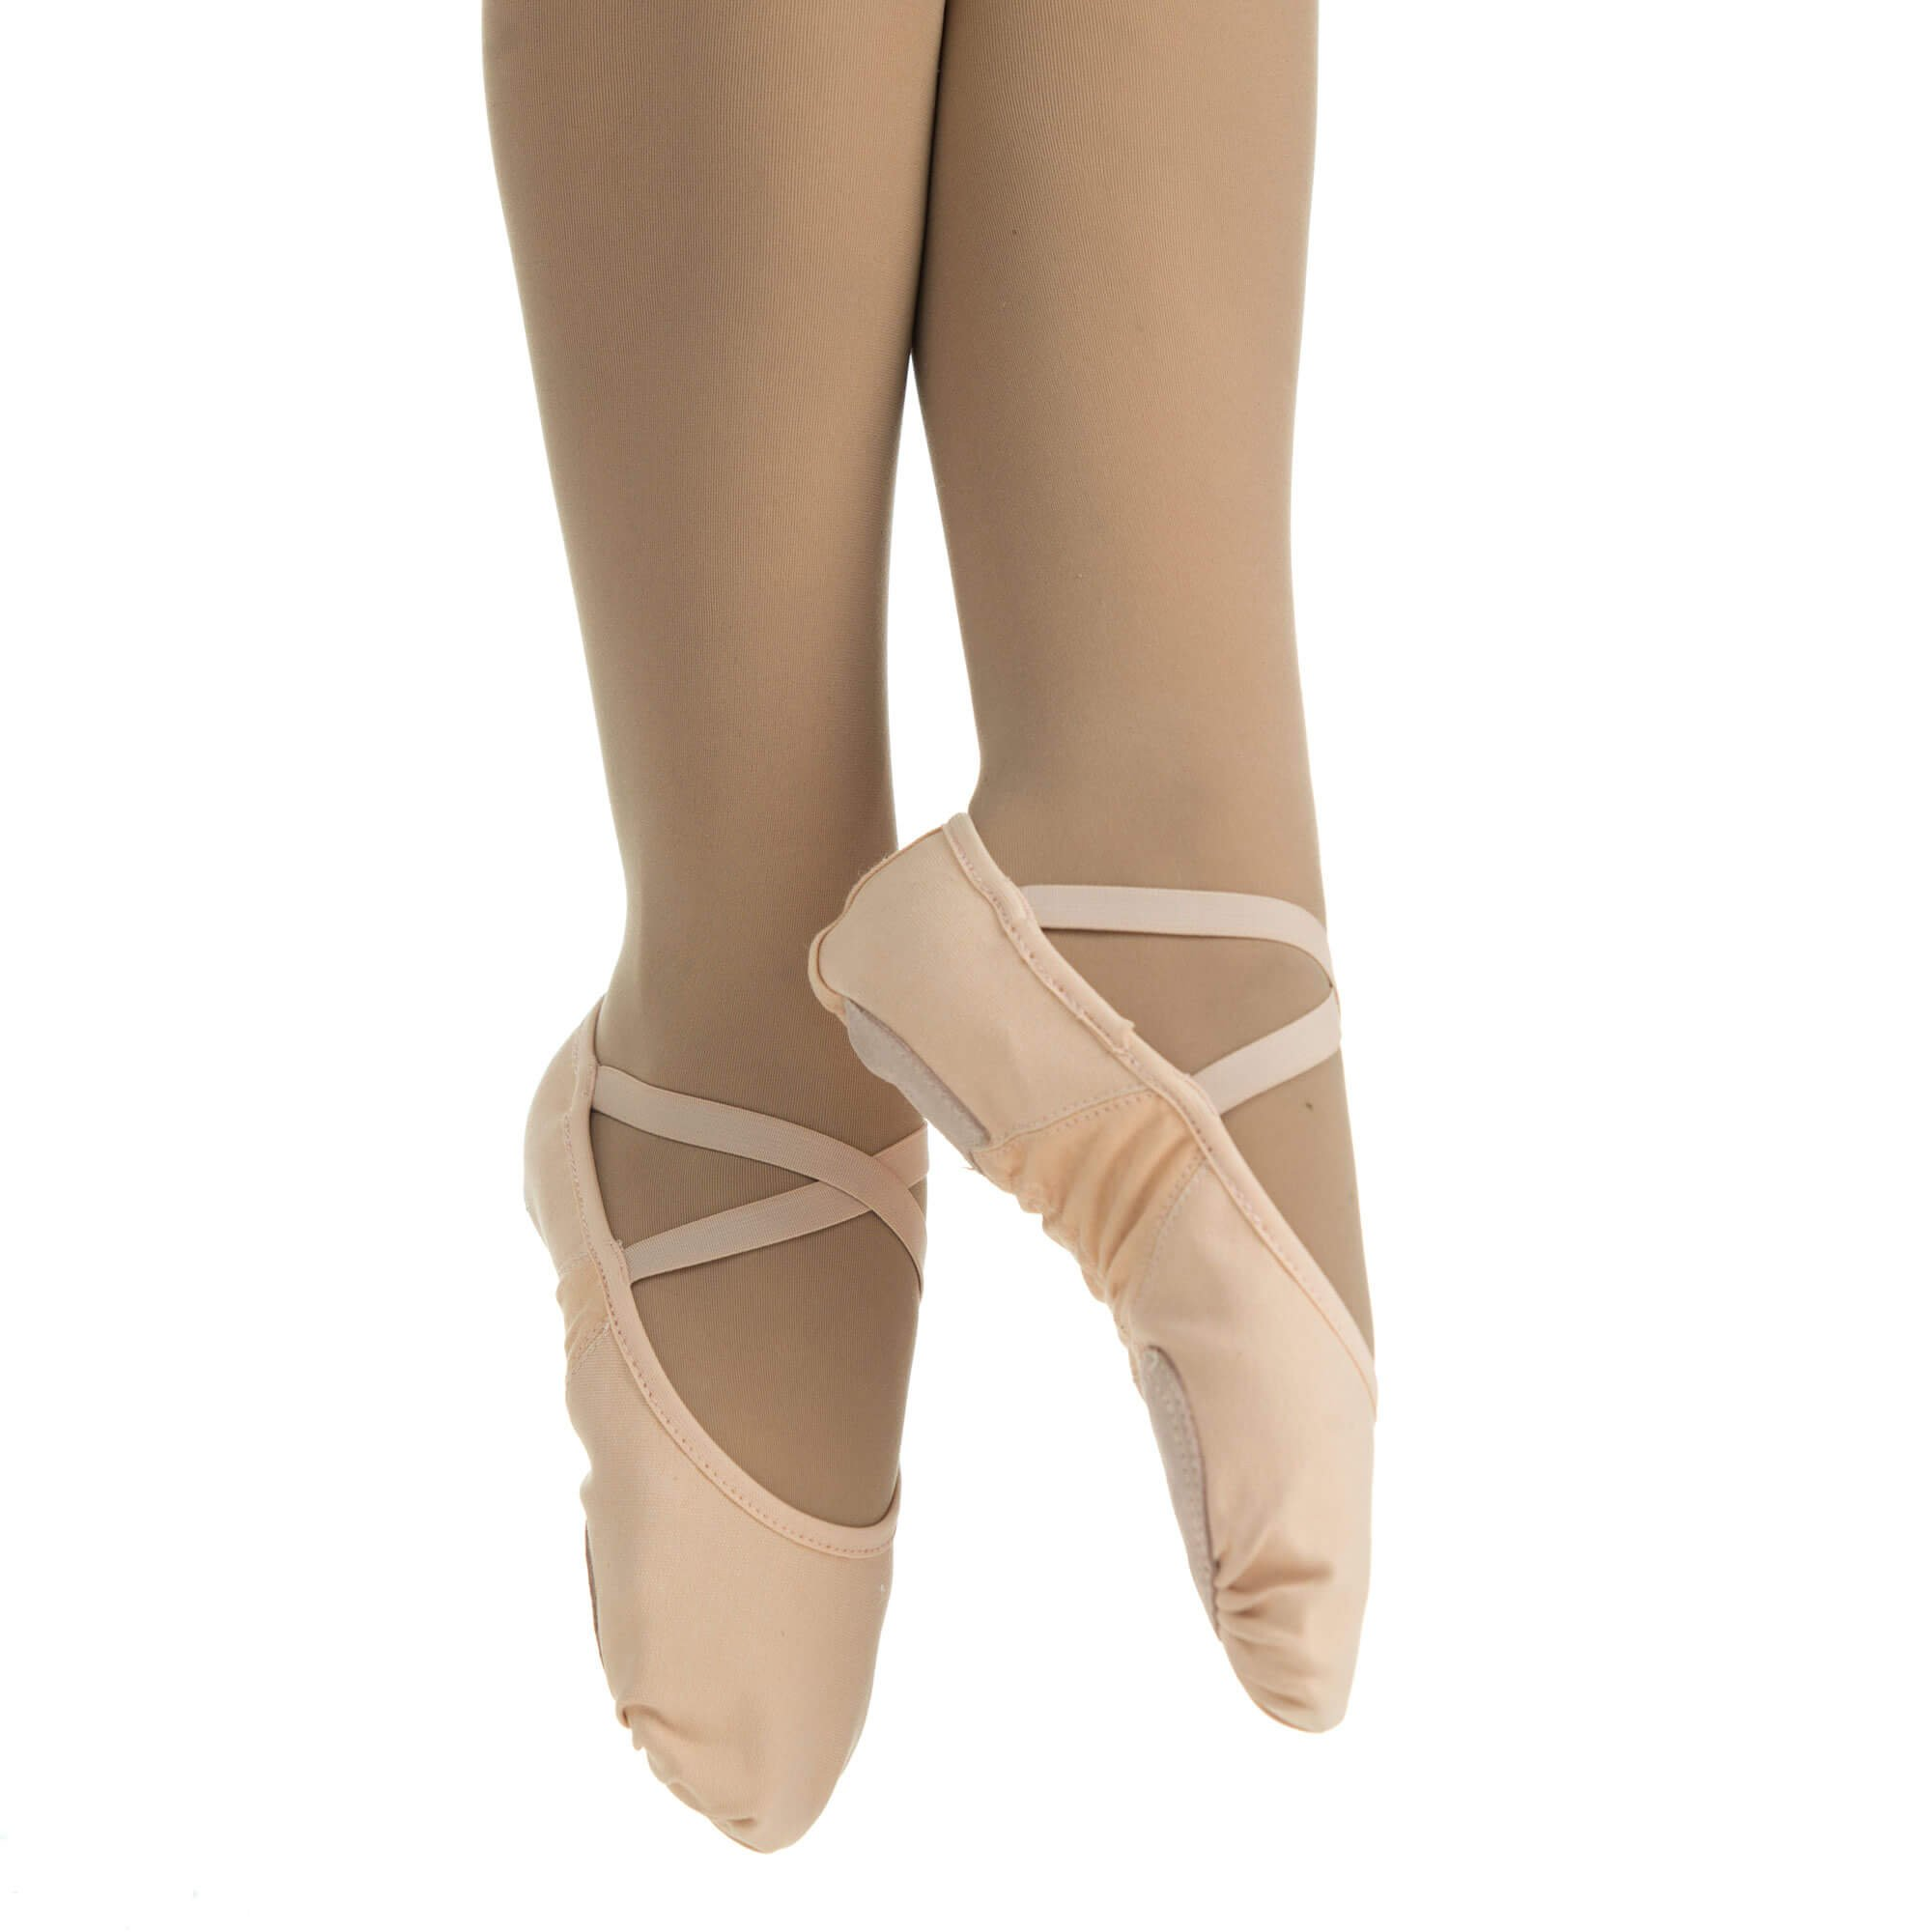 9c12efc339fb Danzcue Adult Canvas Stretch Ballet Slipper